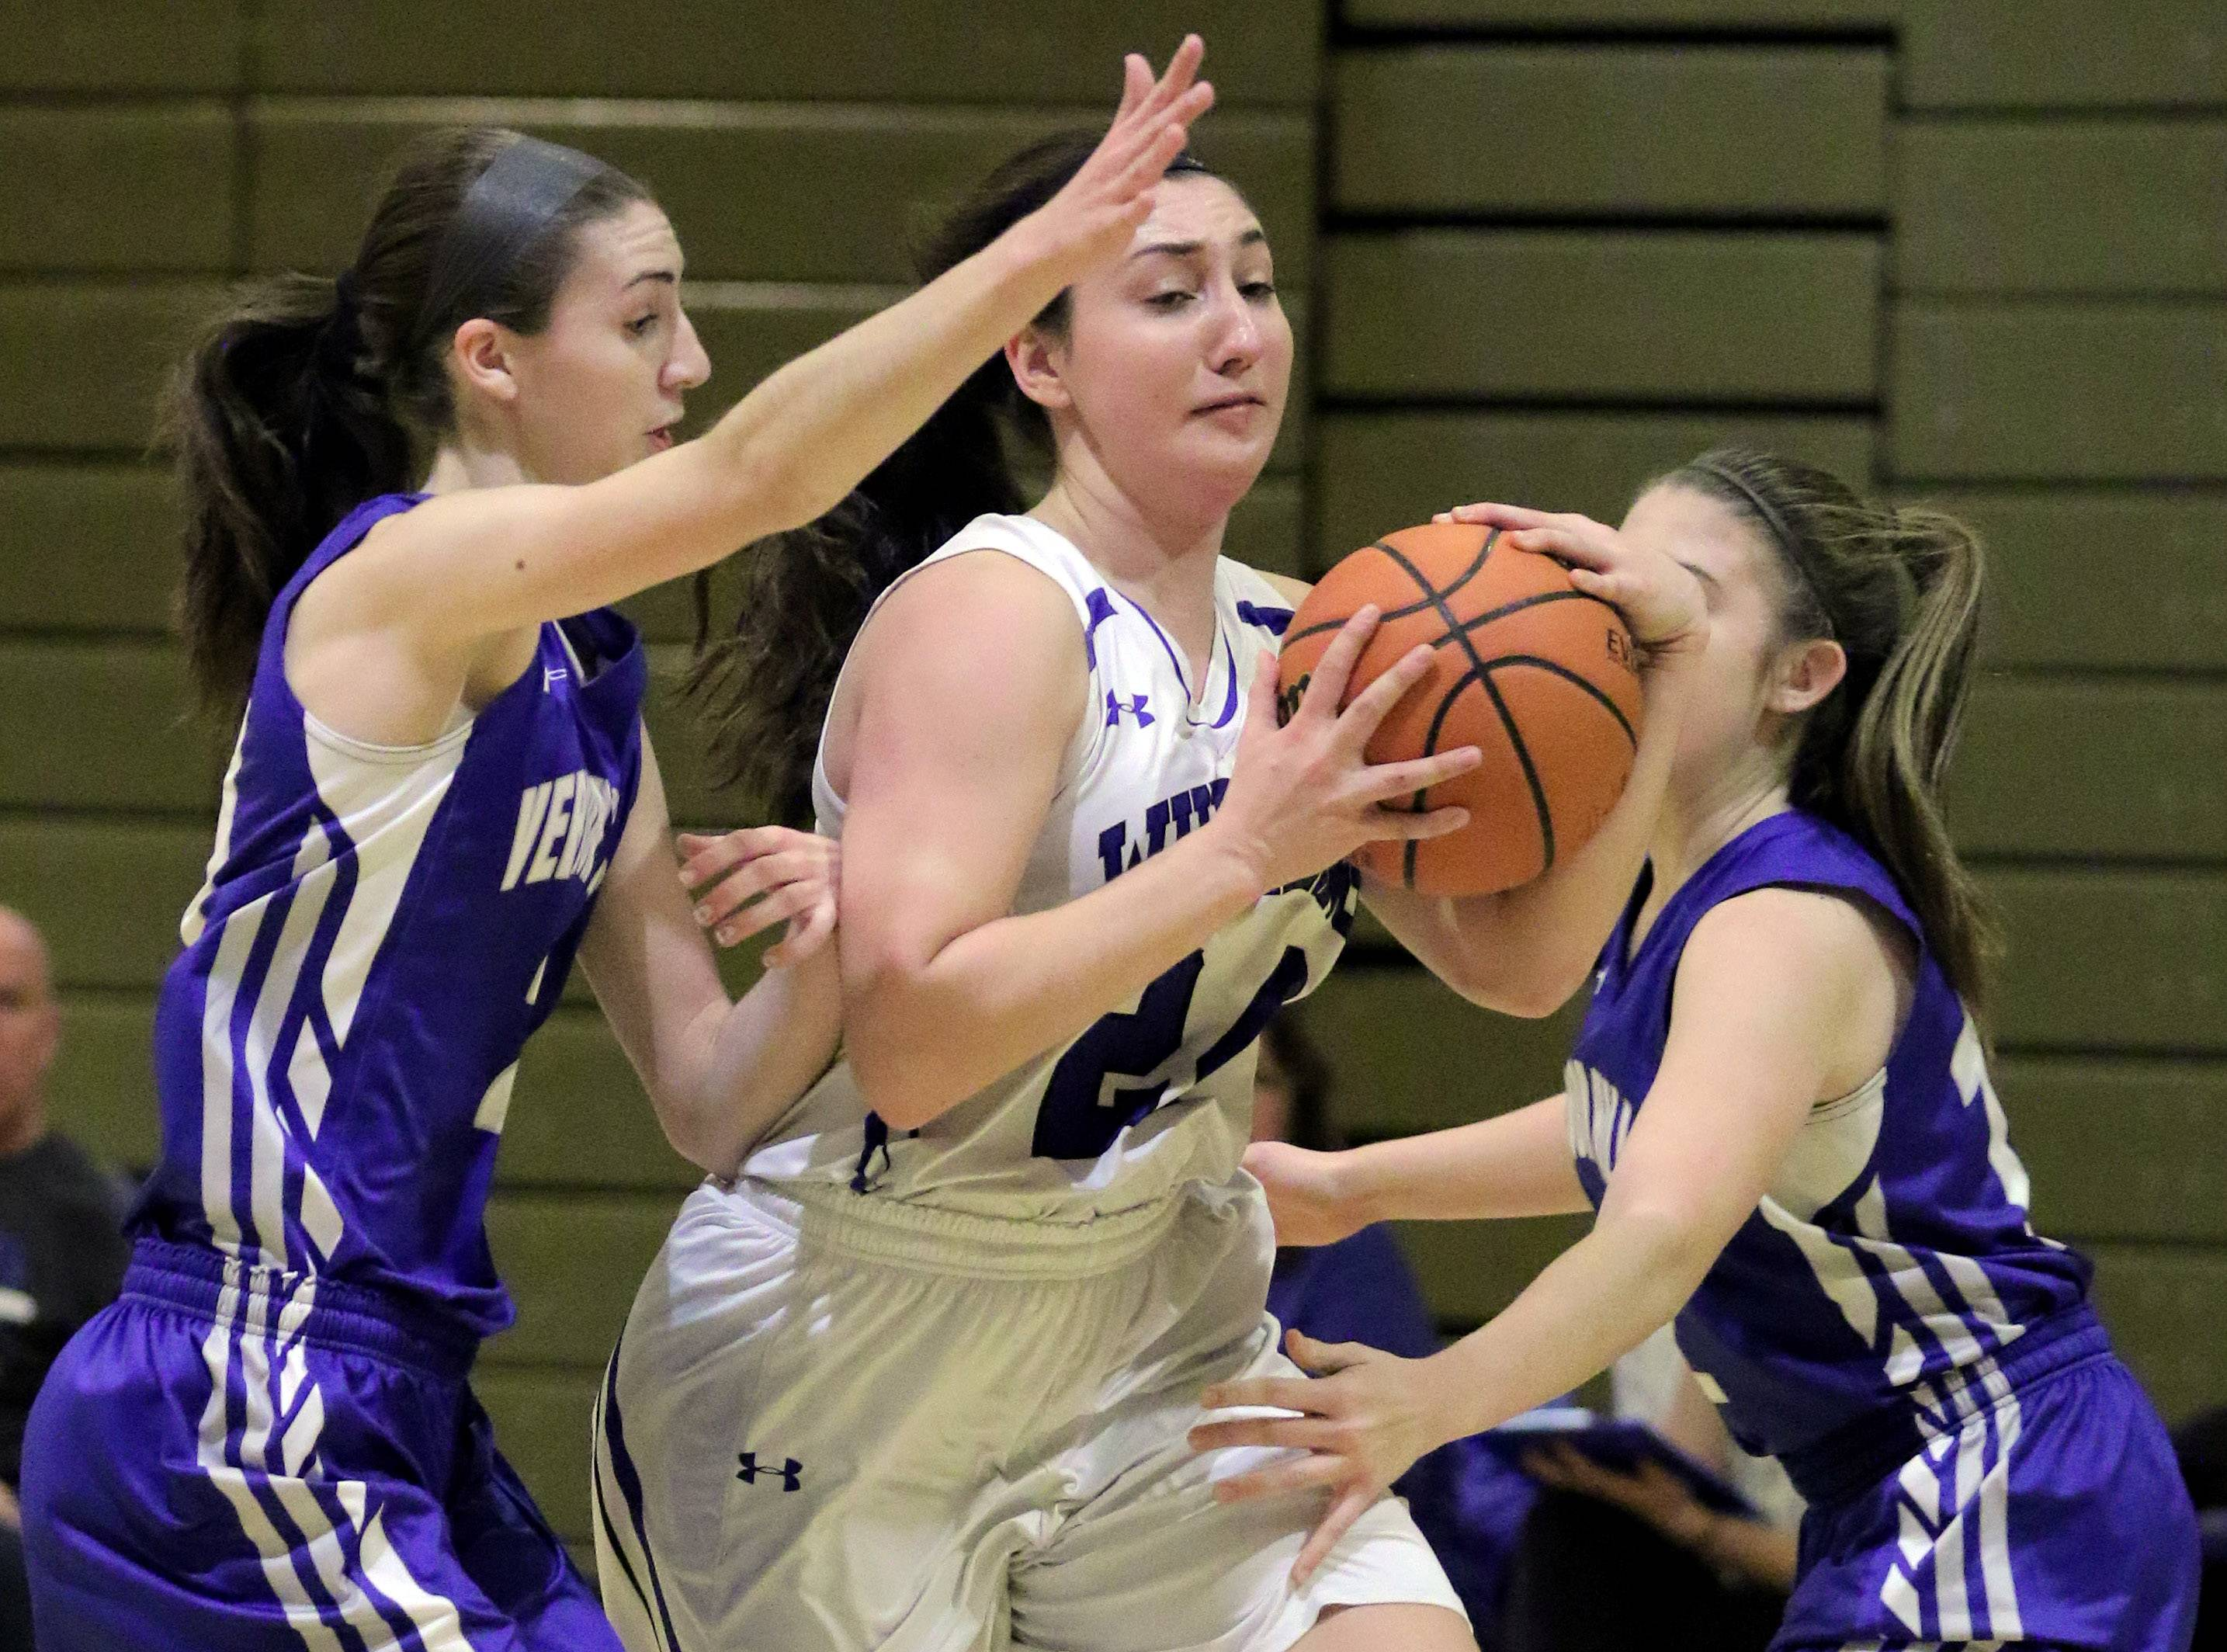 Wheeling's Melissa Carver, middle, tries to split through Vernon Hills' Sophia Lehocky, left, and Piper Bedell.